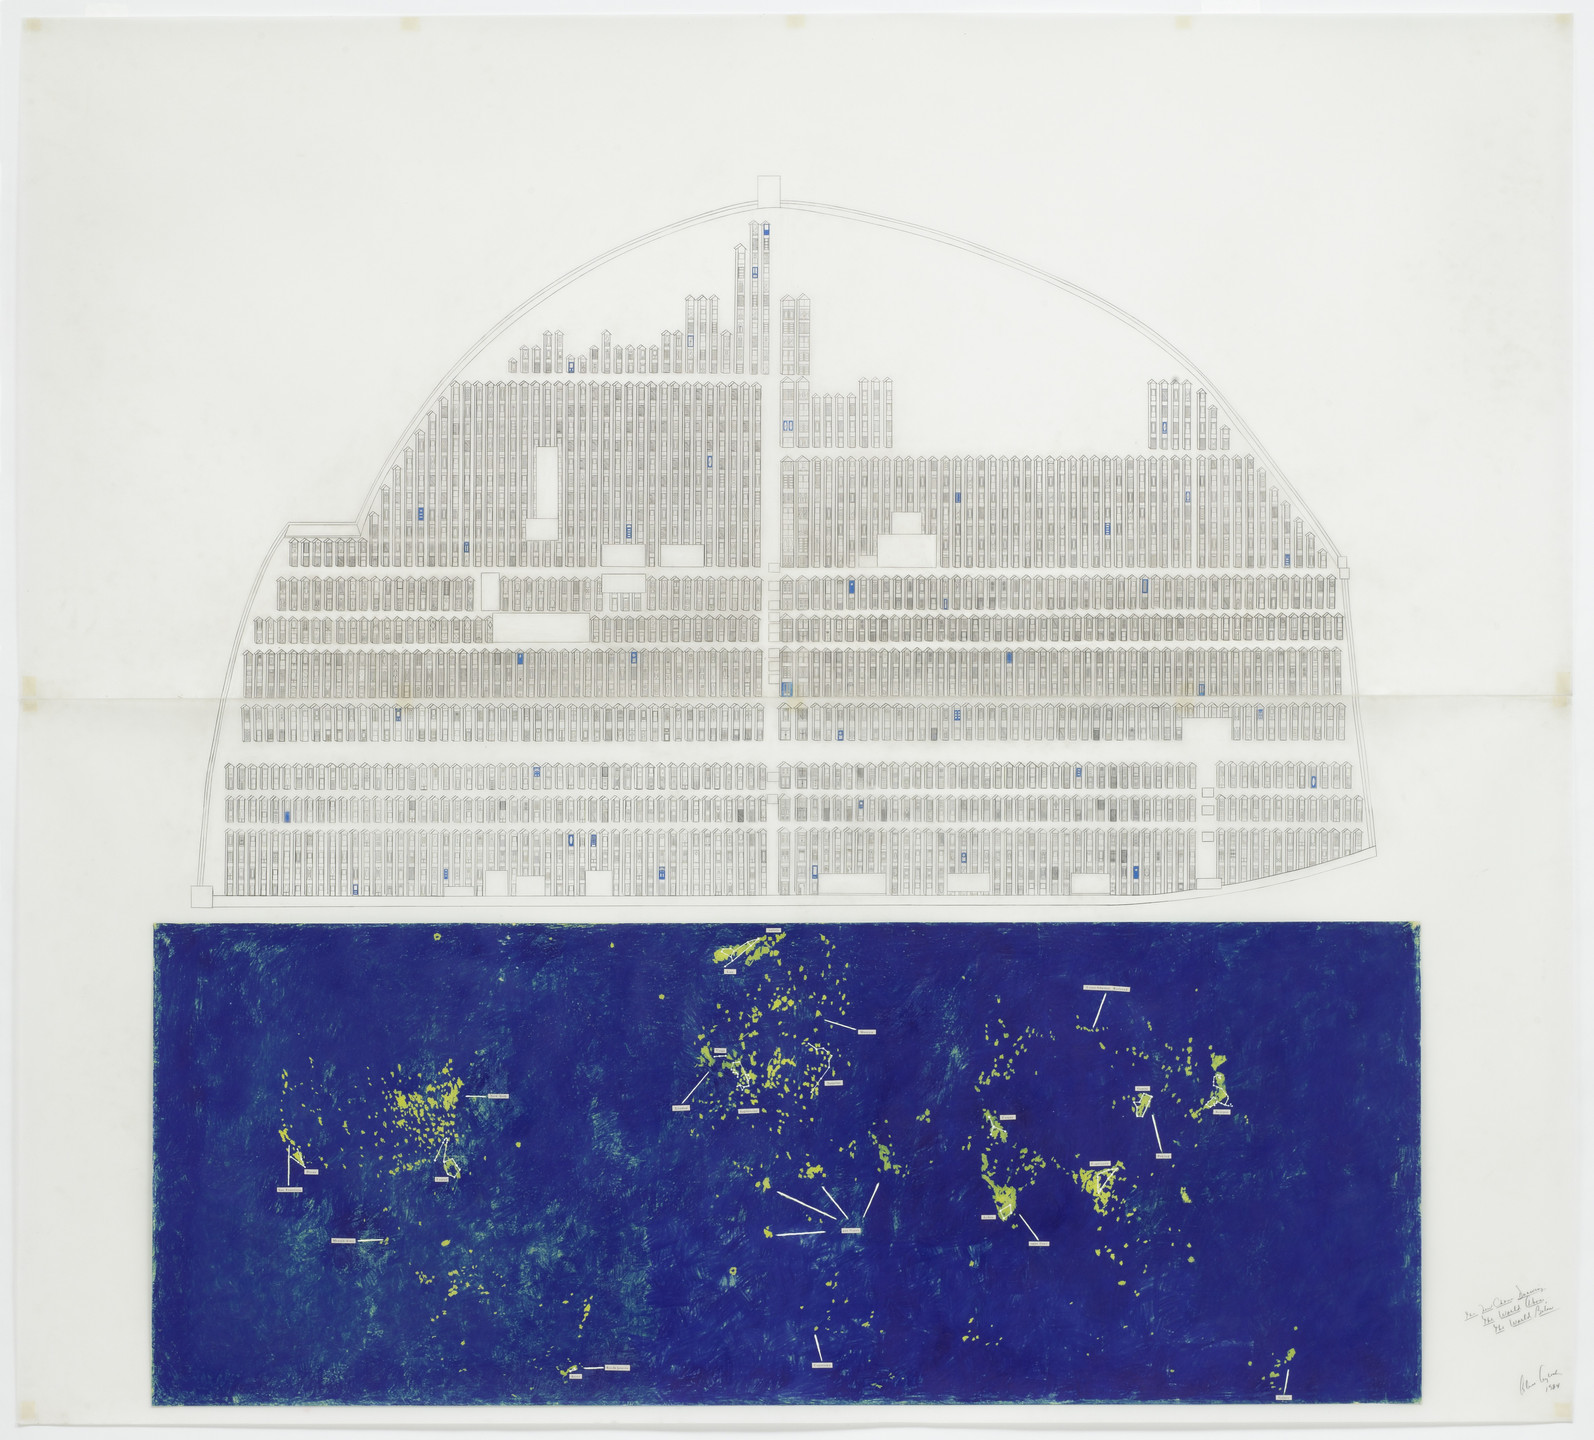 Alice Aycock. The New China Drawing: The World Above, The World Below. 1984